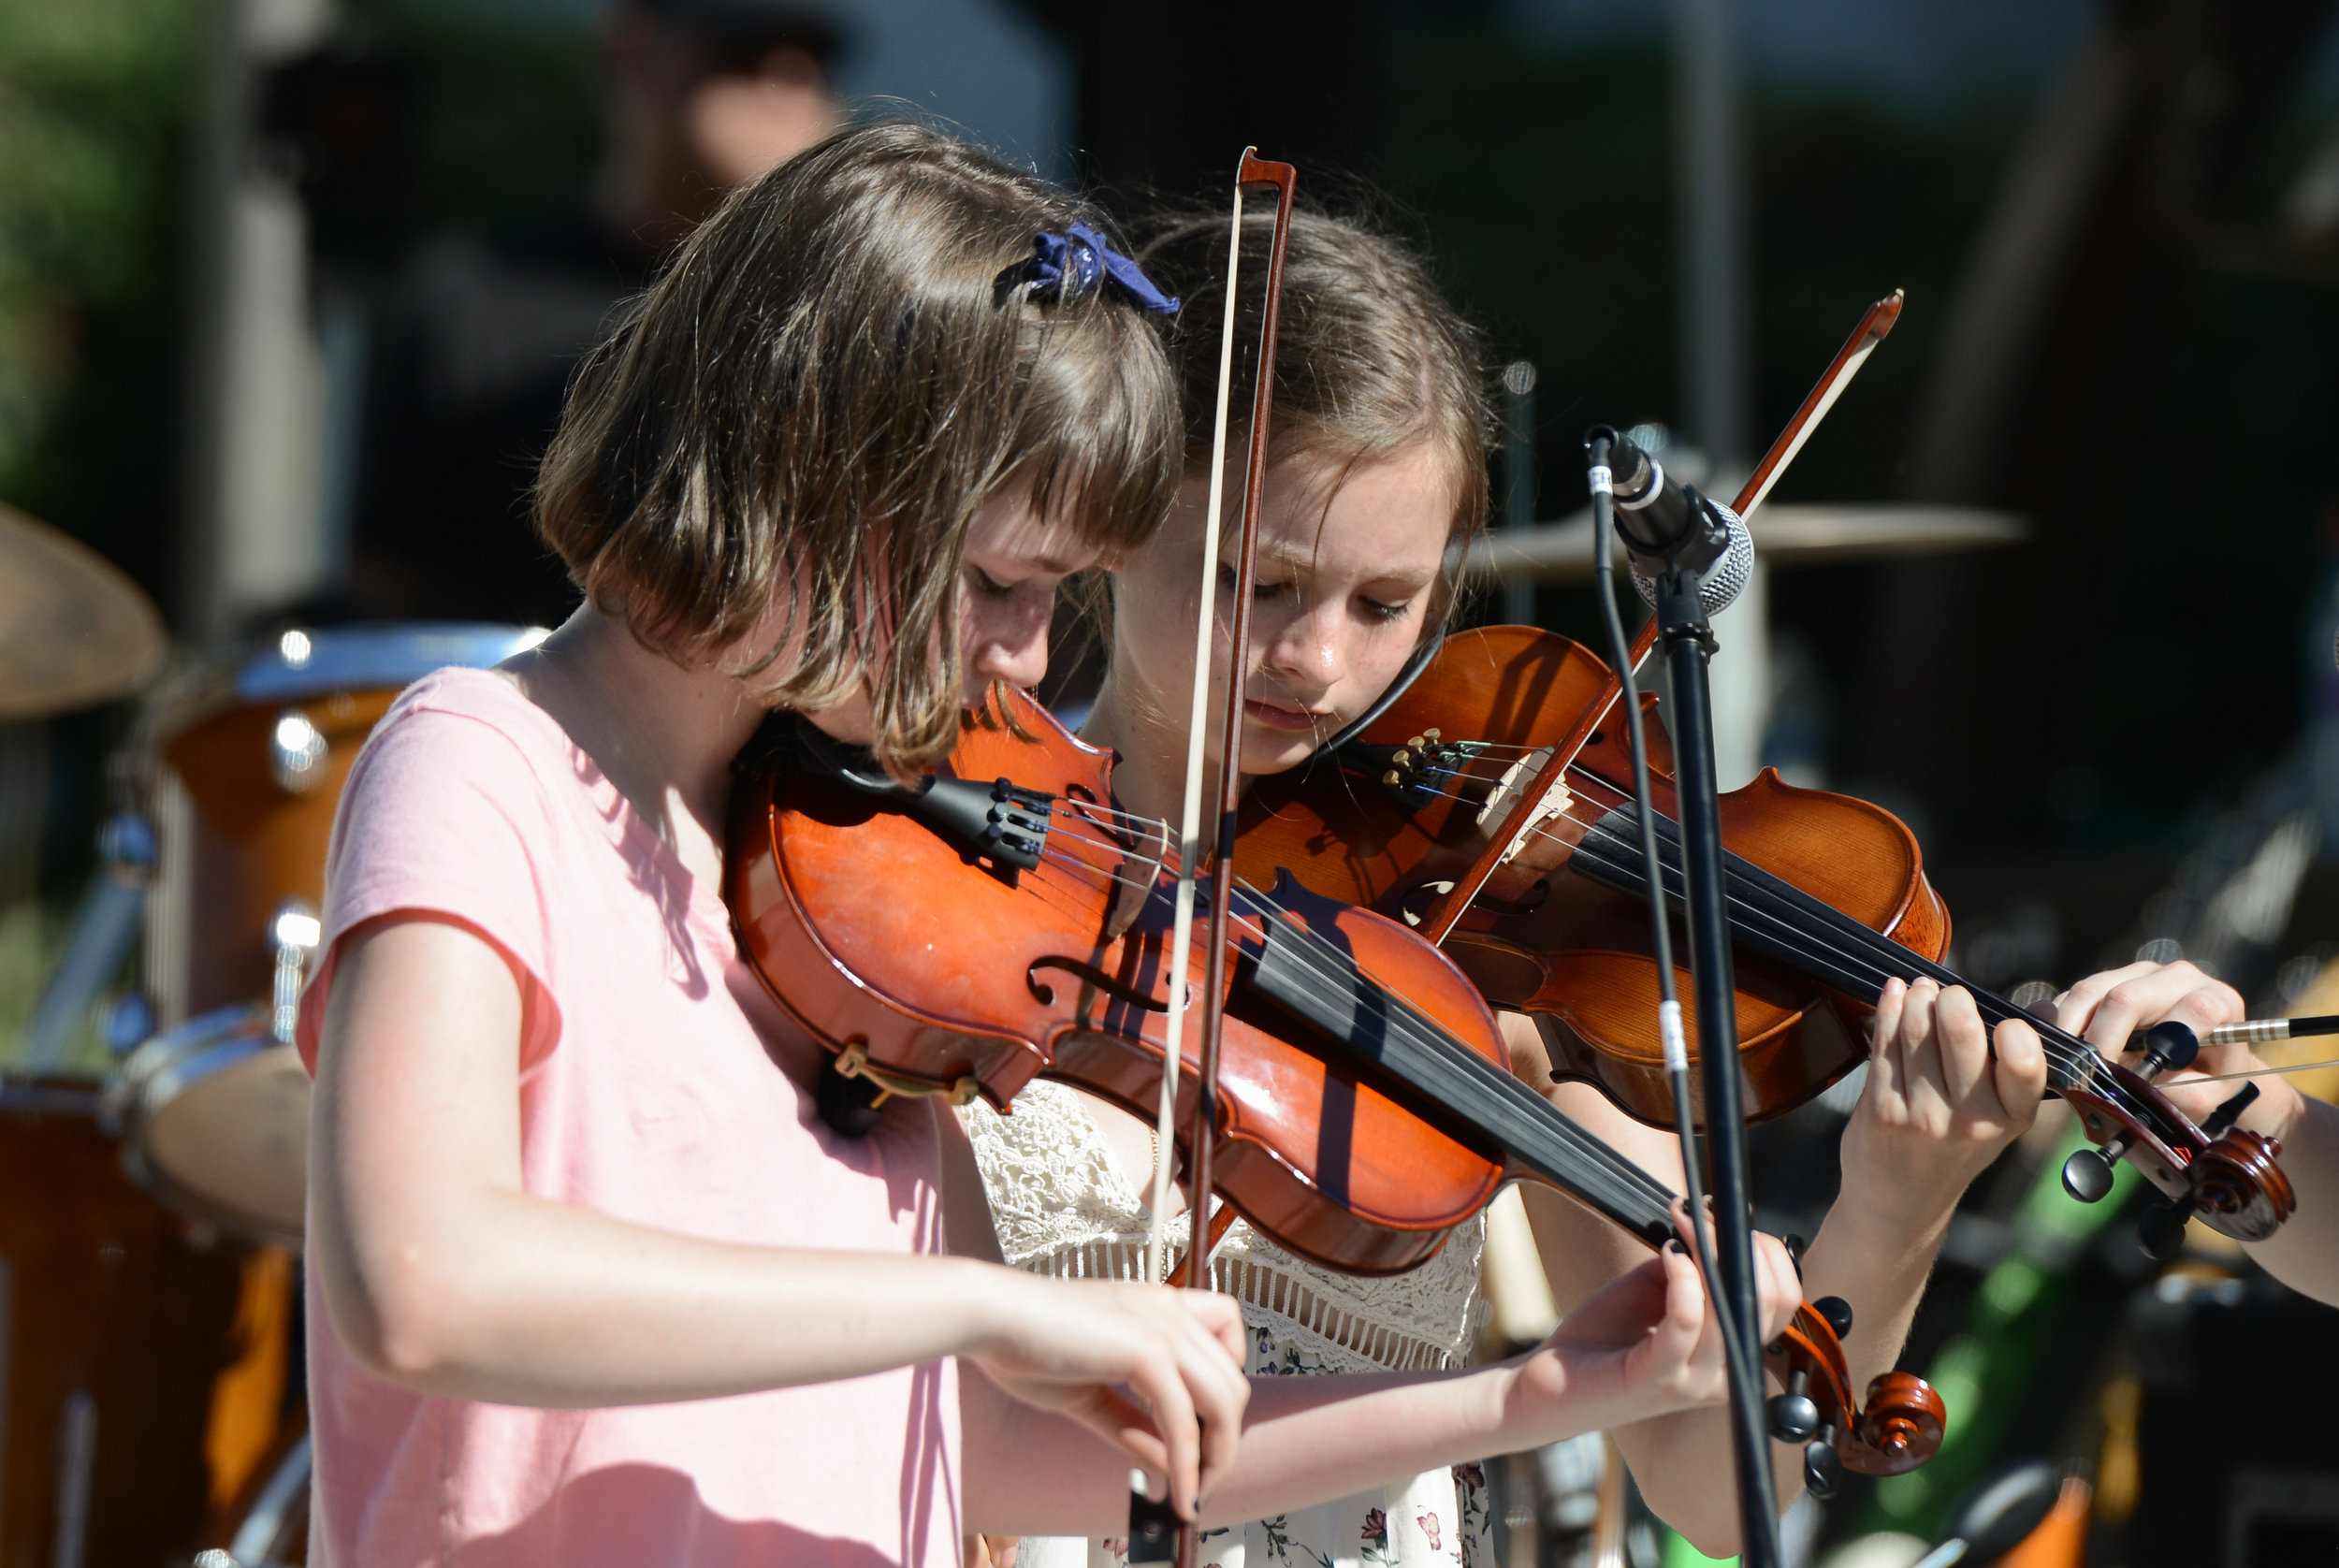 Violin Lessons - We work with beginners to advanced violinist. Classical violin to all styles of music.